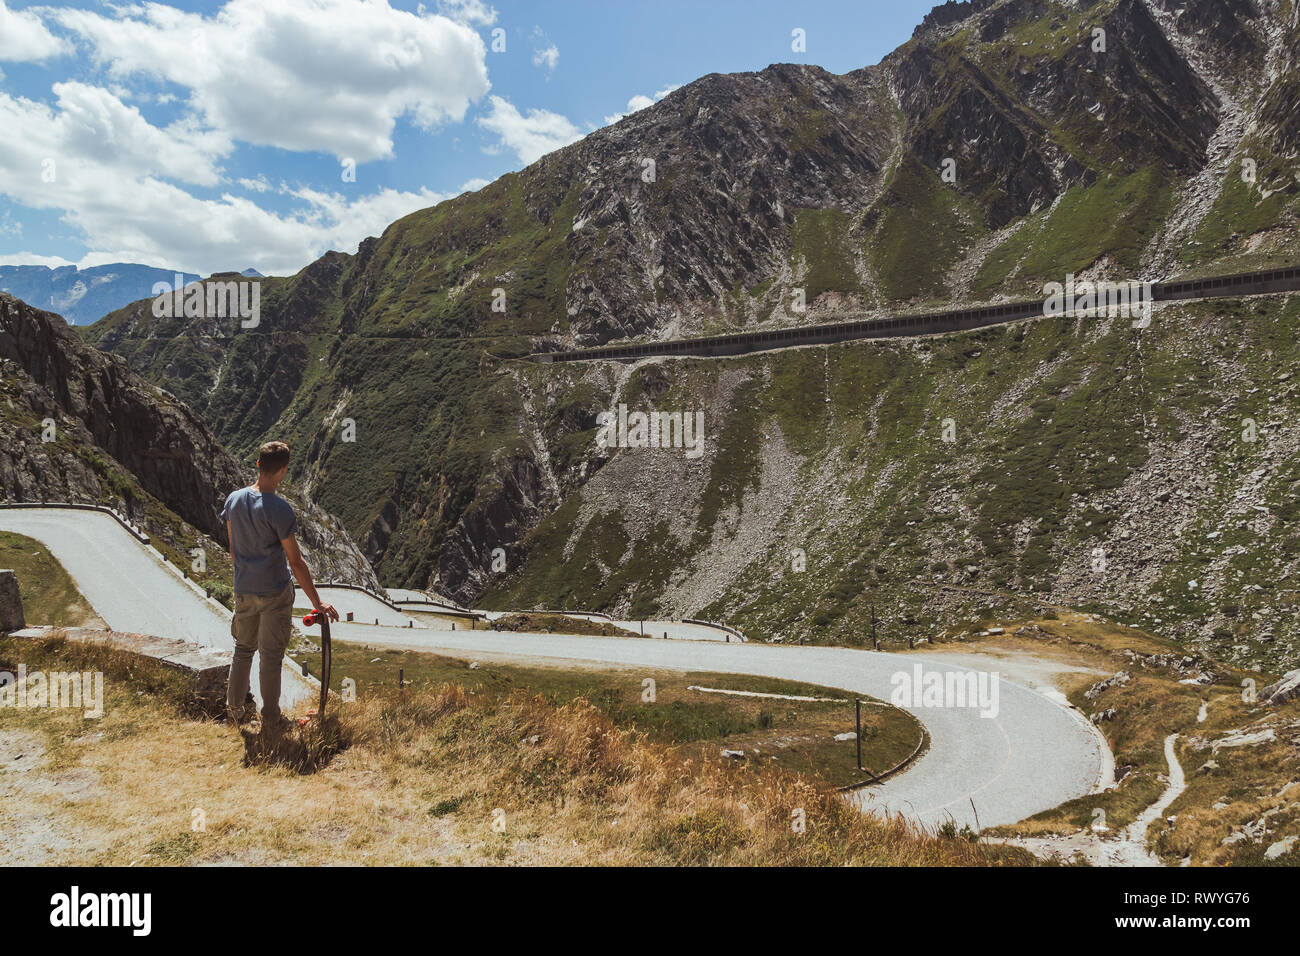 tremola road in san gottardo during a sunny day with a boy and his skateboard - Stock Image